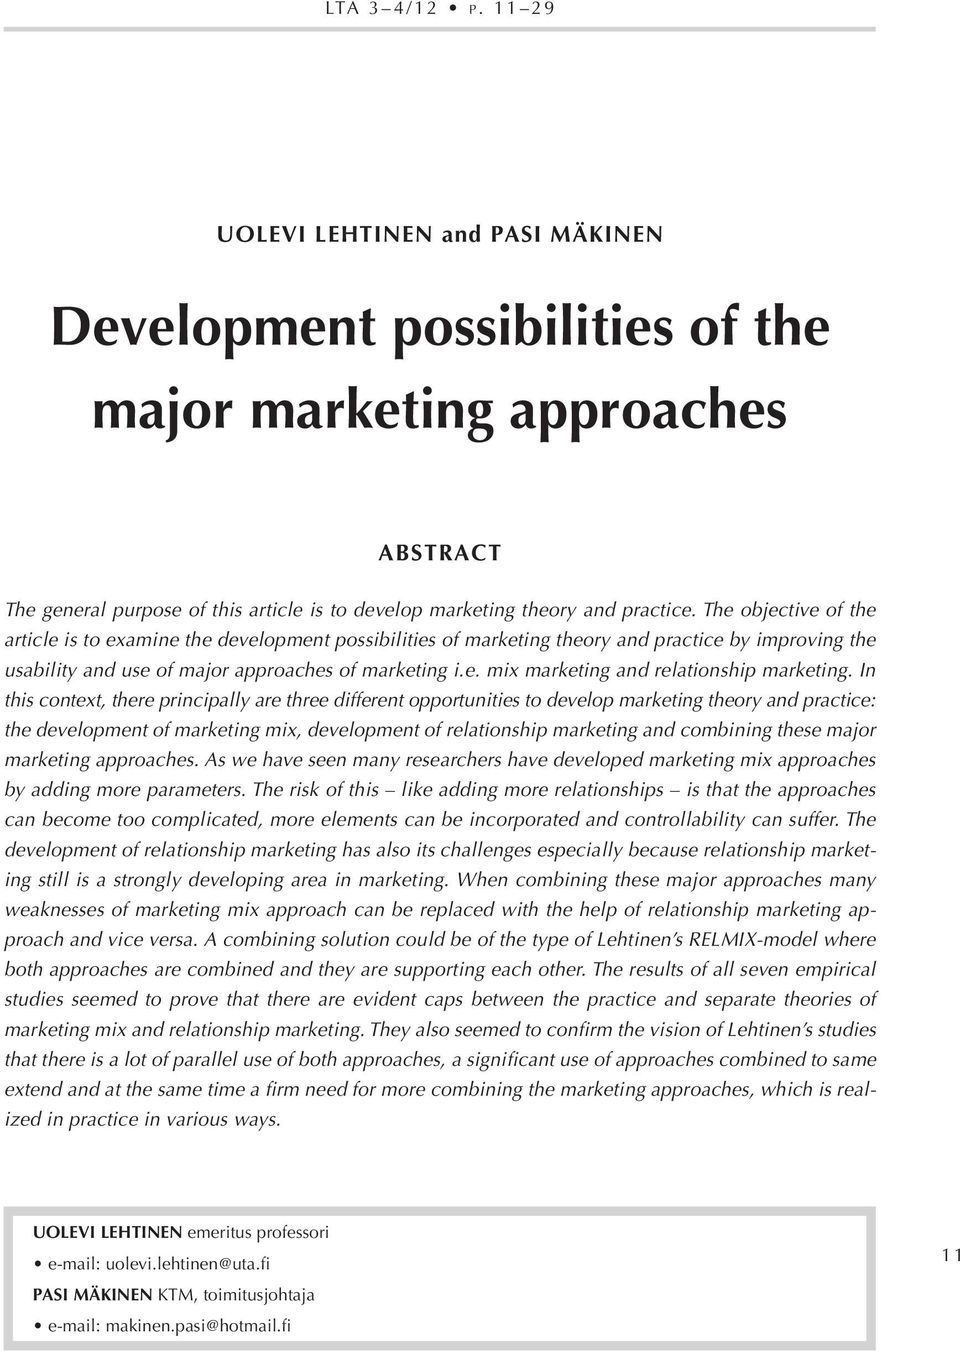 The objective of the article is to examine the development possibilities of marketing theory and practice by improving the usability and use of major approaches of marketing i.e. mix marketing and relationship marketing.